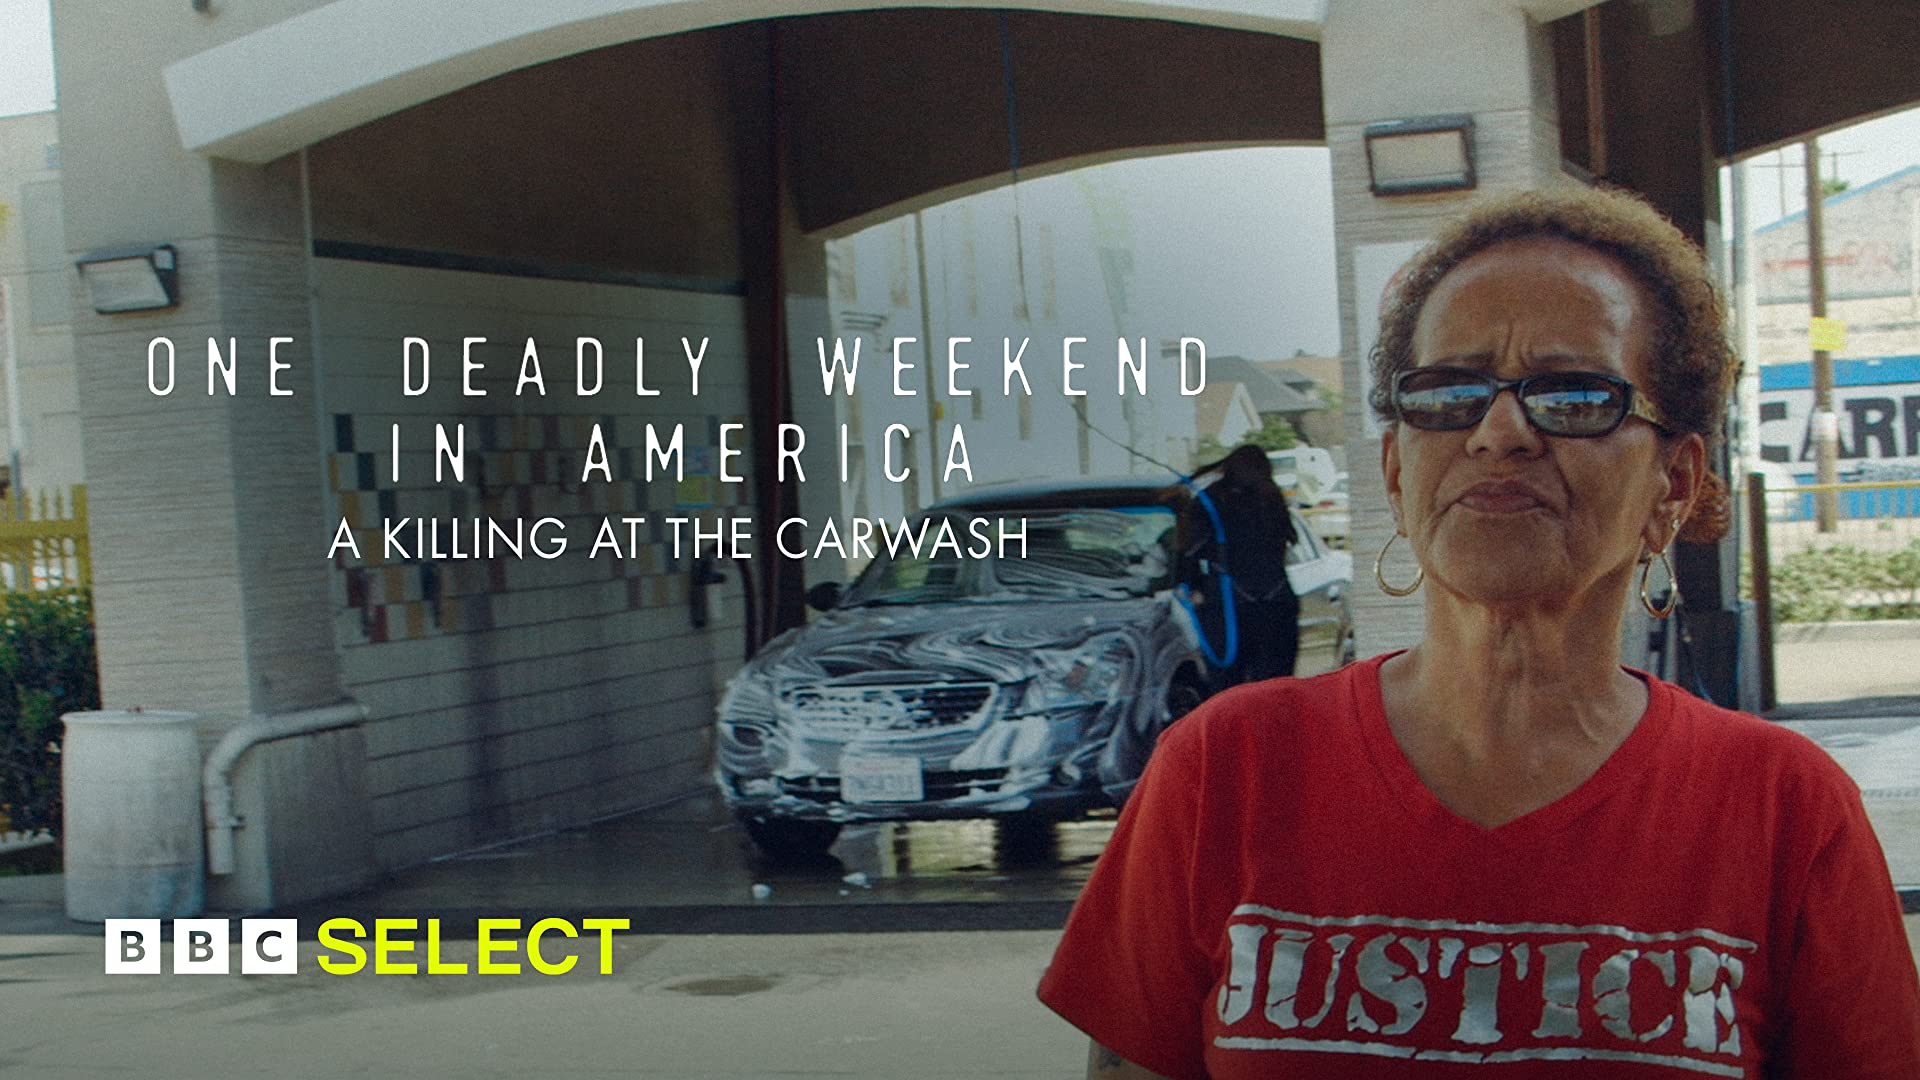 One Deadly Weekend in America: A Killing at the Carwash